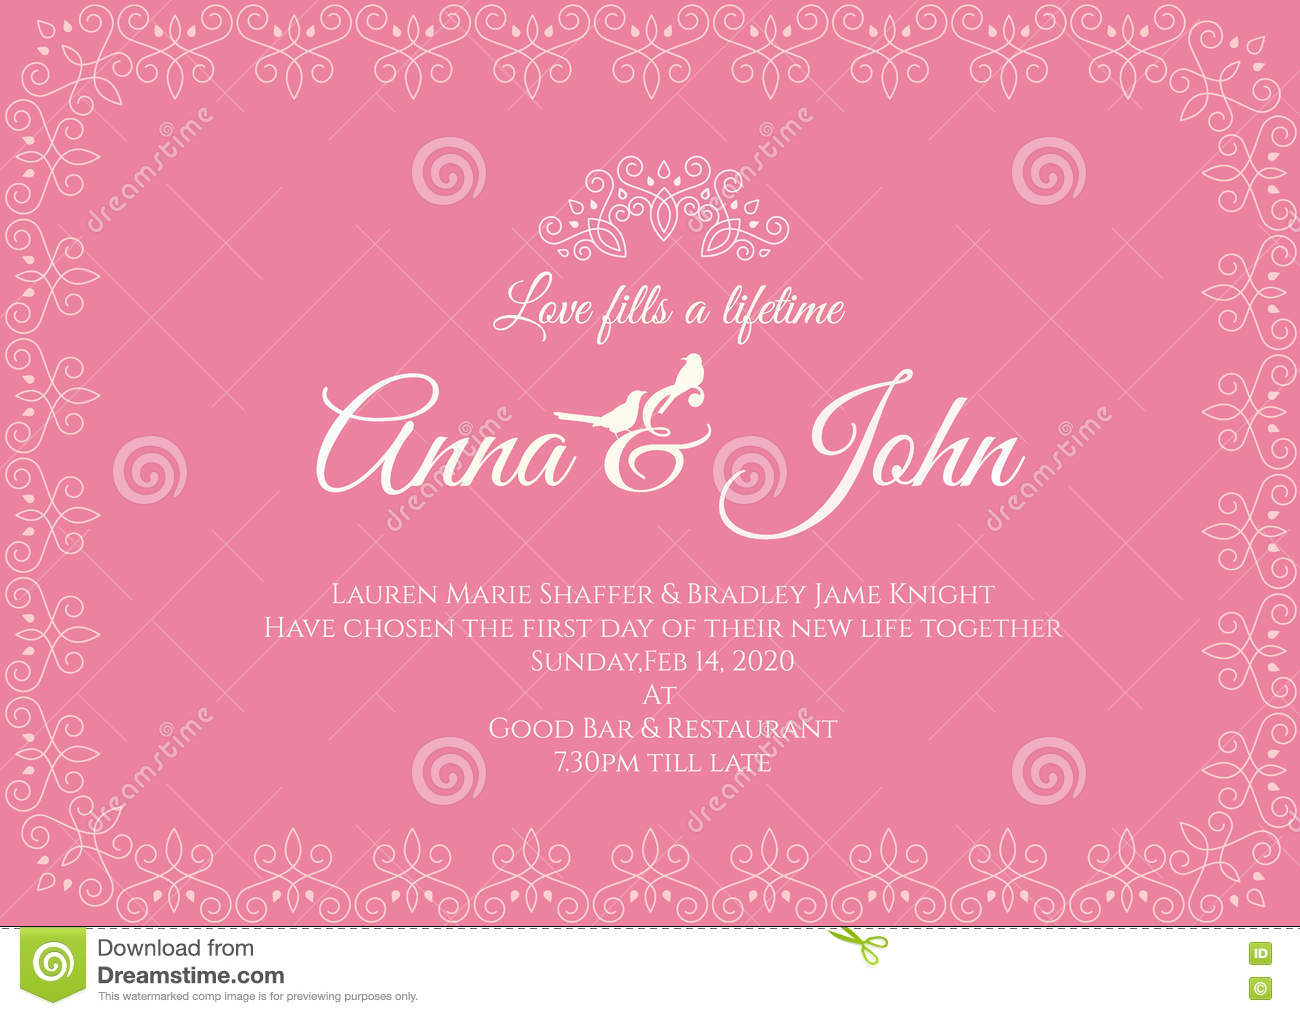 Wedding Card Line Art Designs : Wedding card pink line art frame vector template design